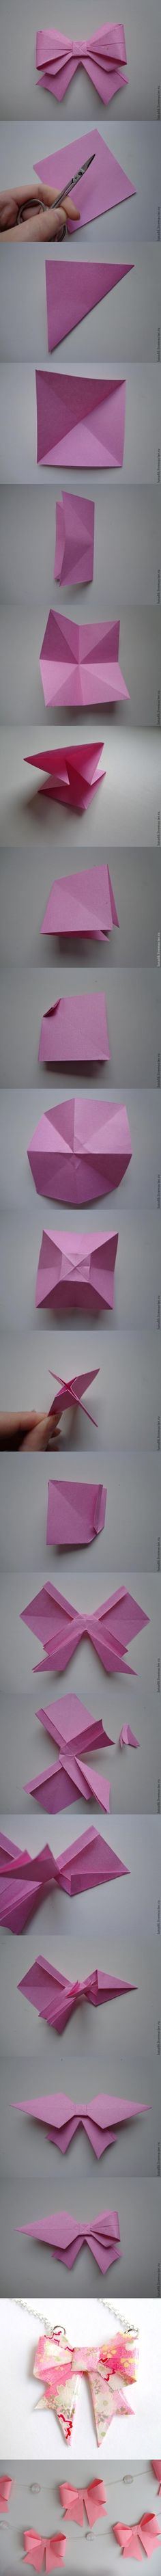 #diy #crafts #paperbow DIY Origami-Paper-Bow 3 More